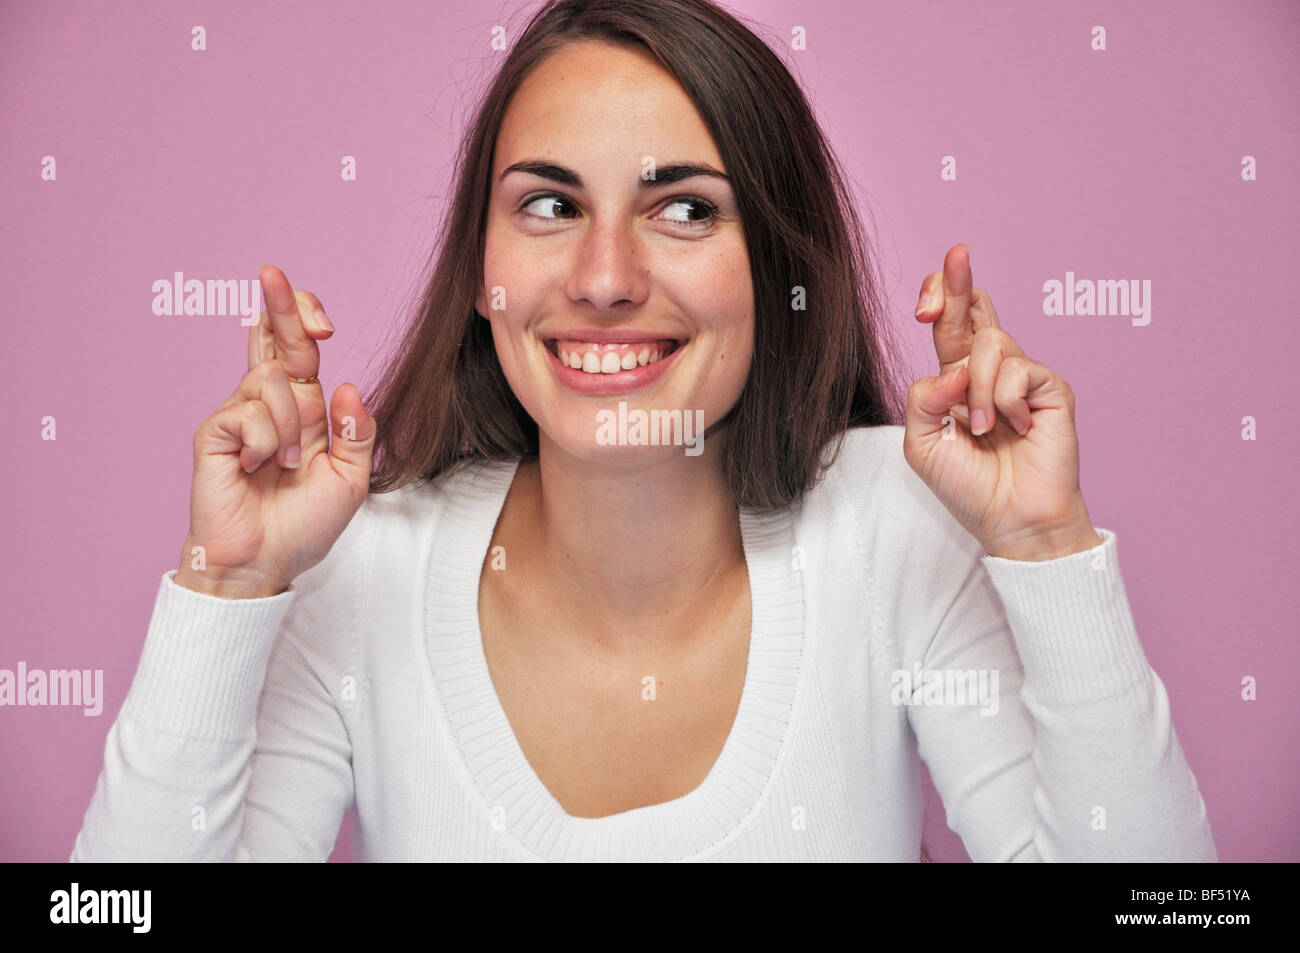 Young woman with fingers crossed - Stock Image